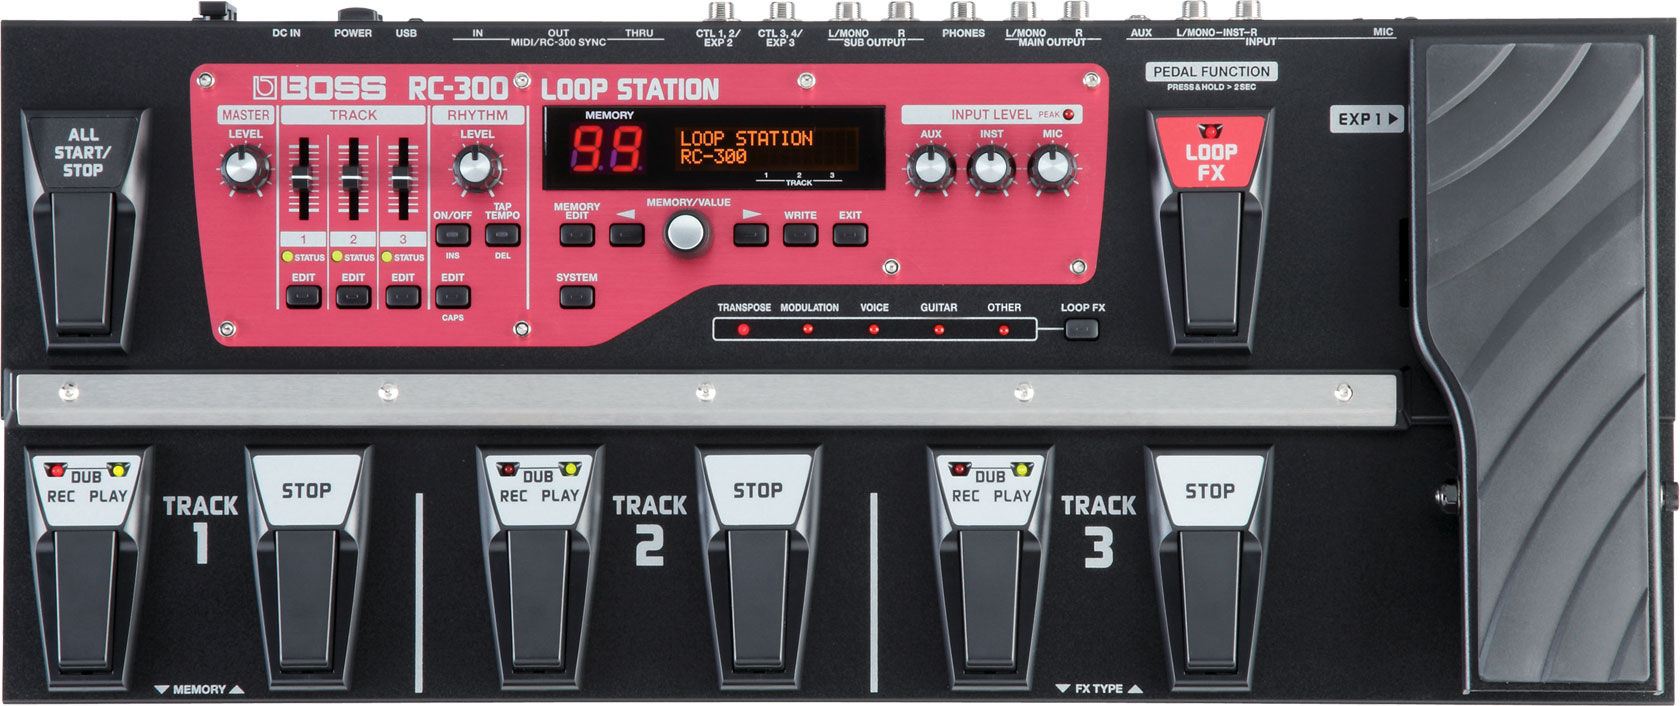 loop station review of the boss rc 300 looper pedal. Black Bedroom Furniture Sets. Home Design Ideas